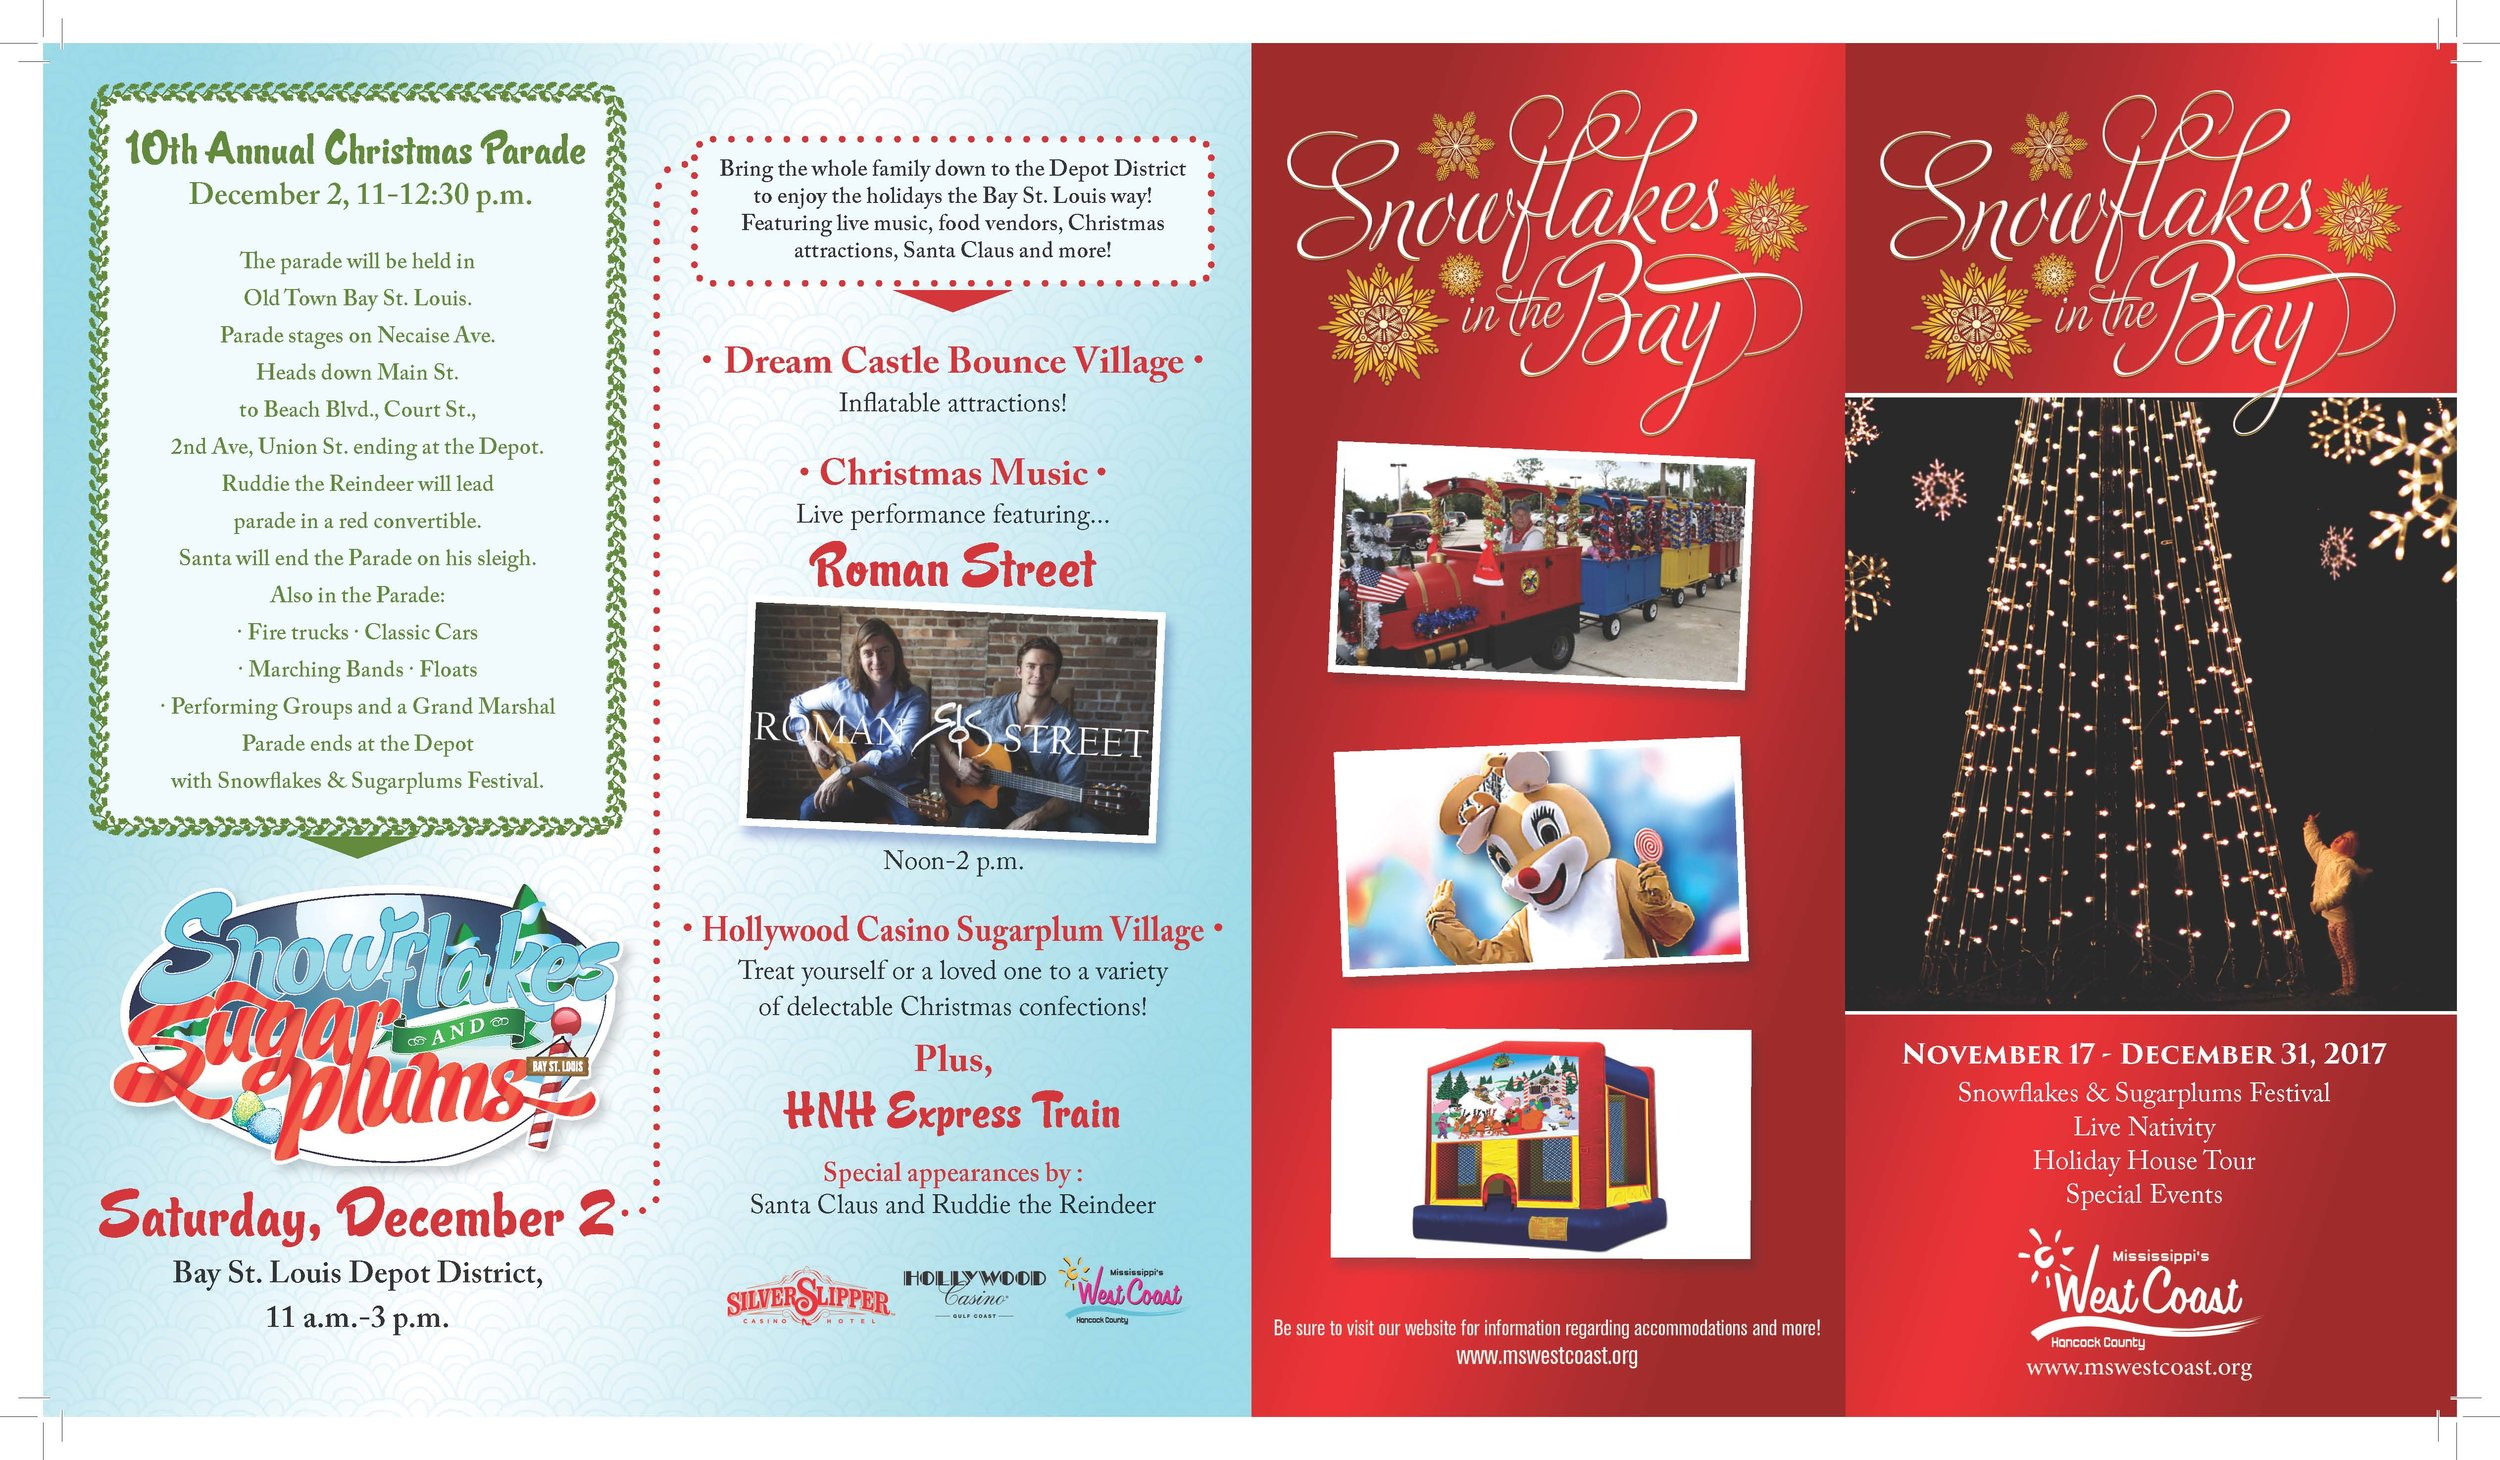 Snowflakes in the Bay brochure